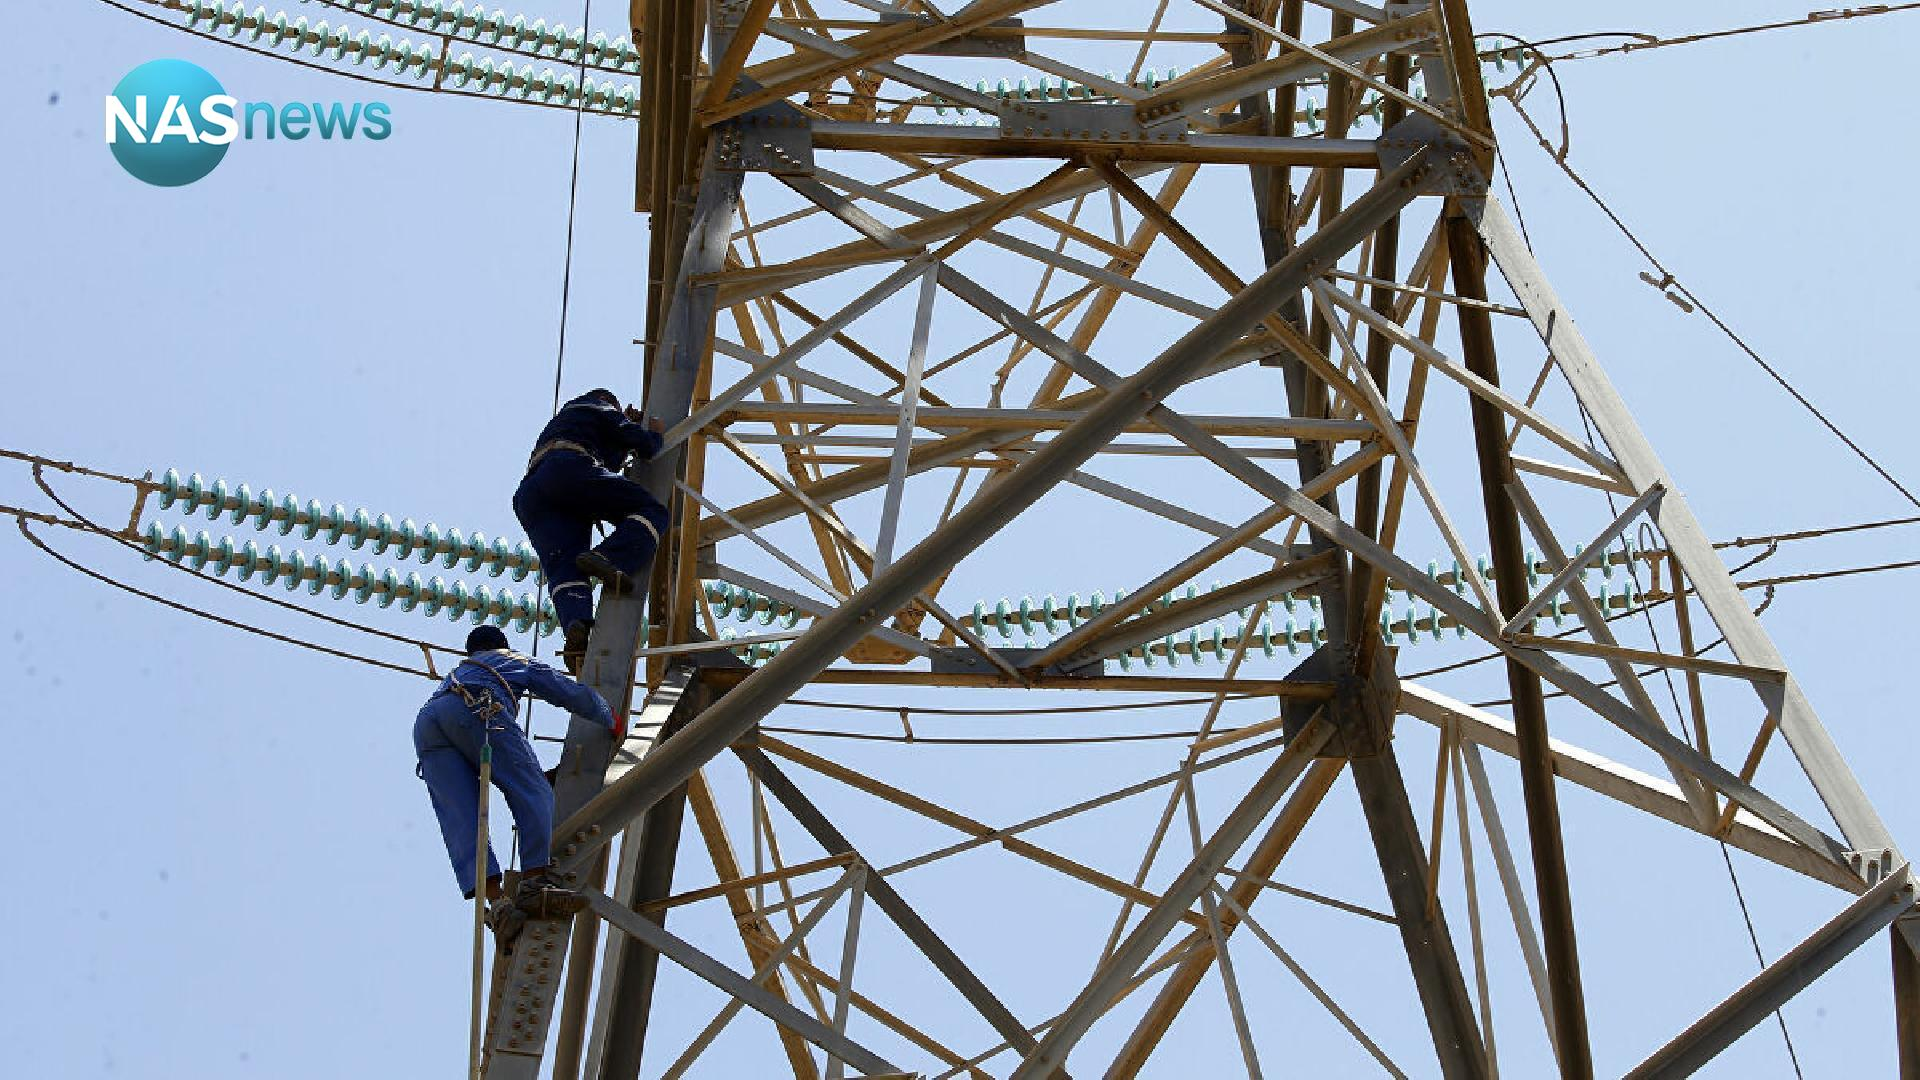 The Iraqi Ministry of Electricity announces a plan to add 50000 megawatts